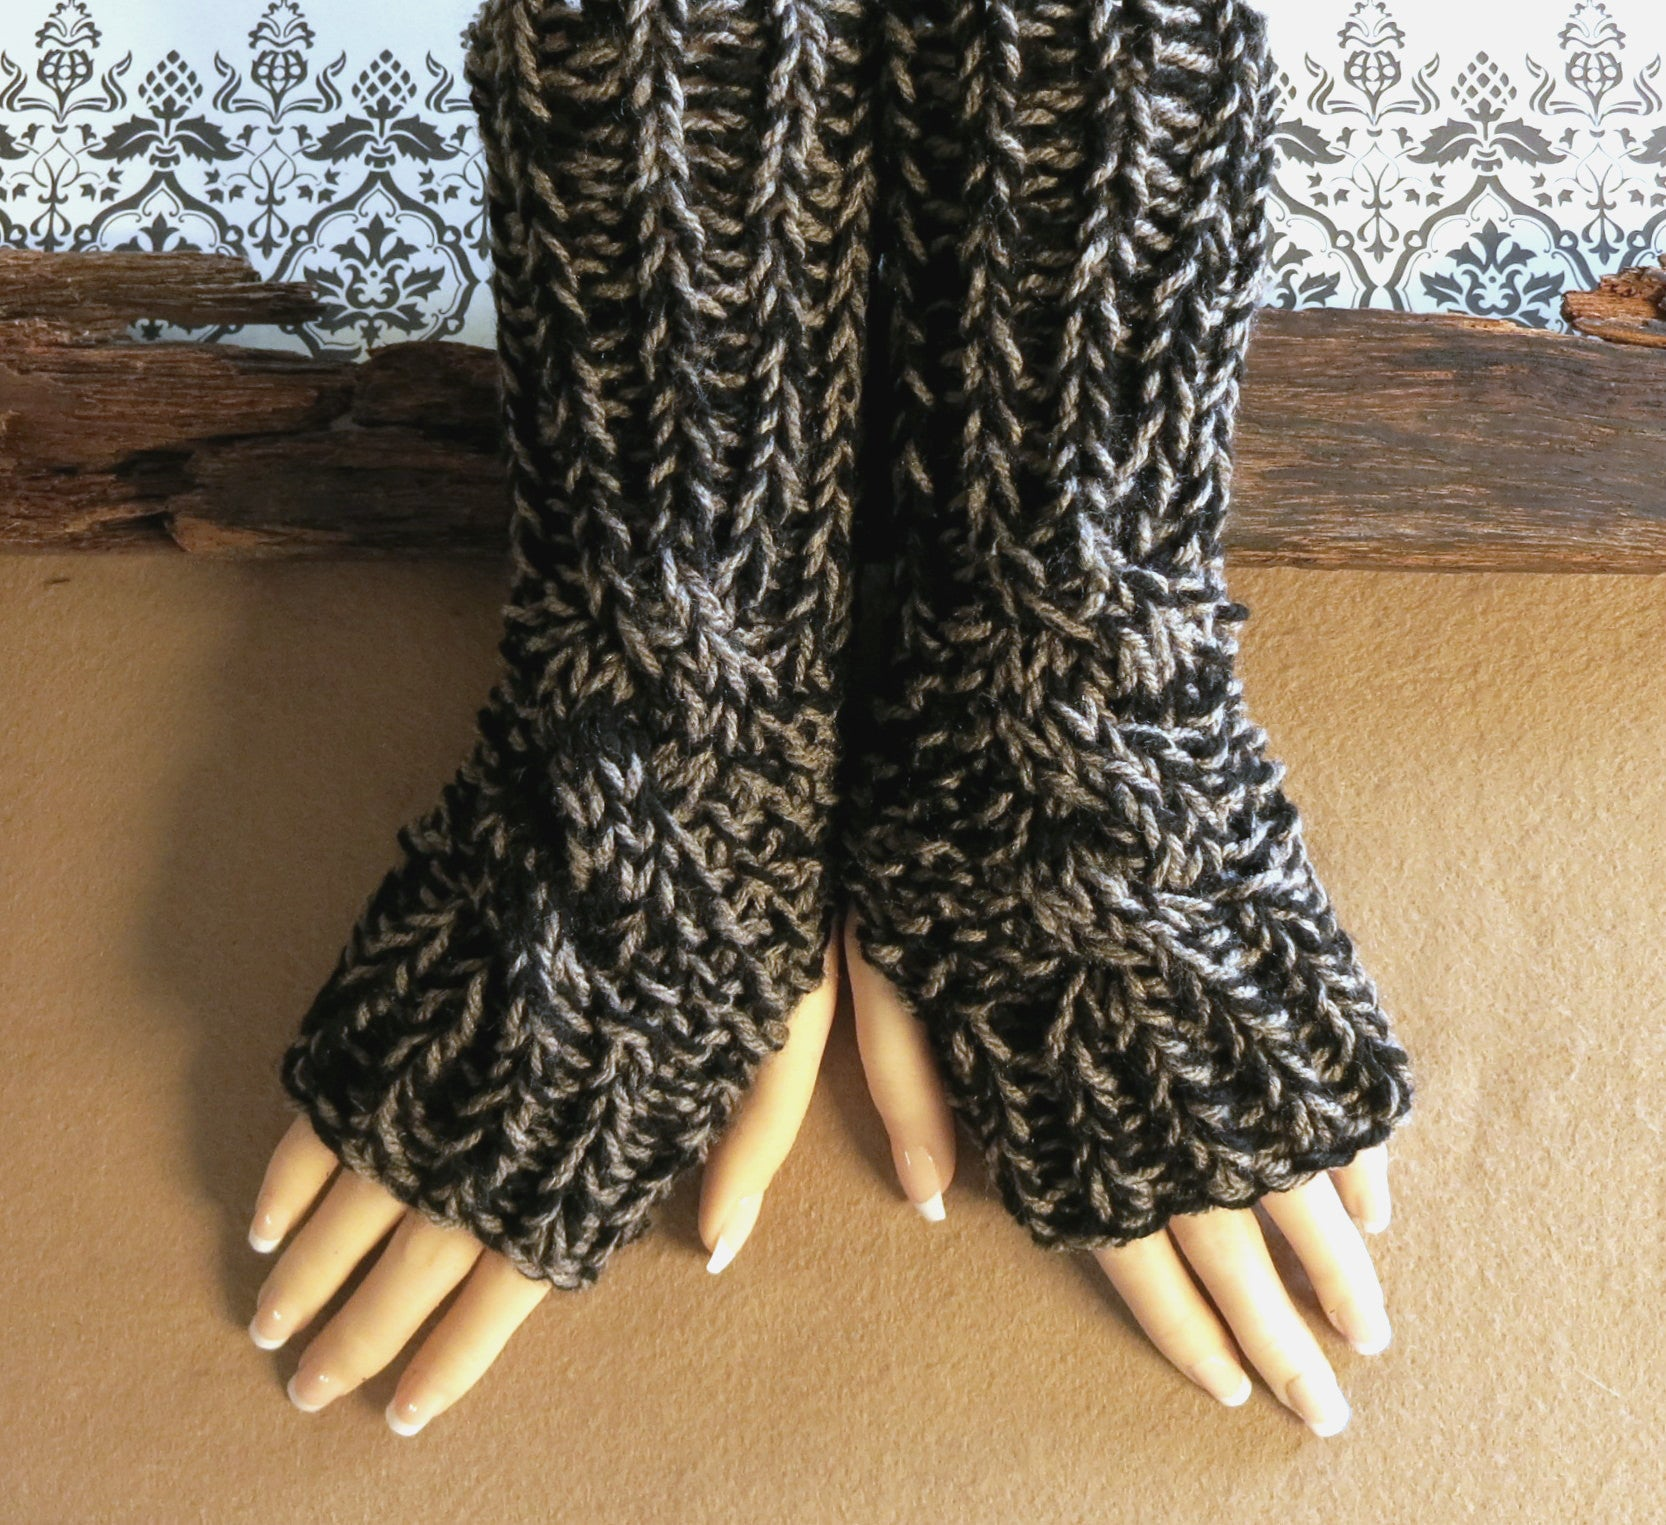 Cabled-Fingerless-Gloves-Nchanted-Gifts